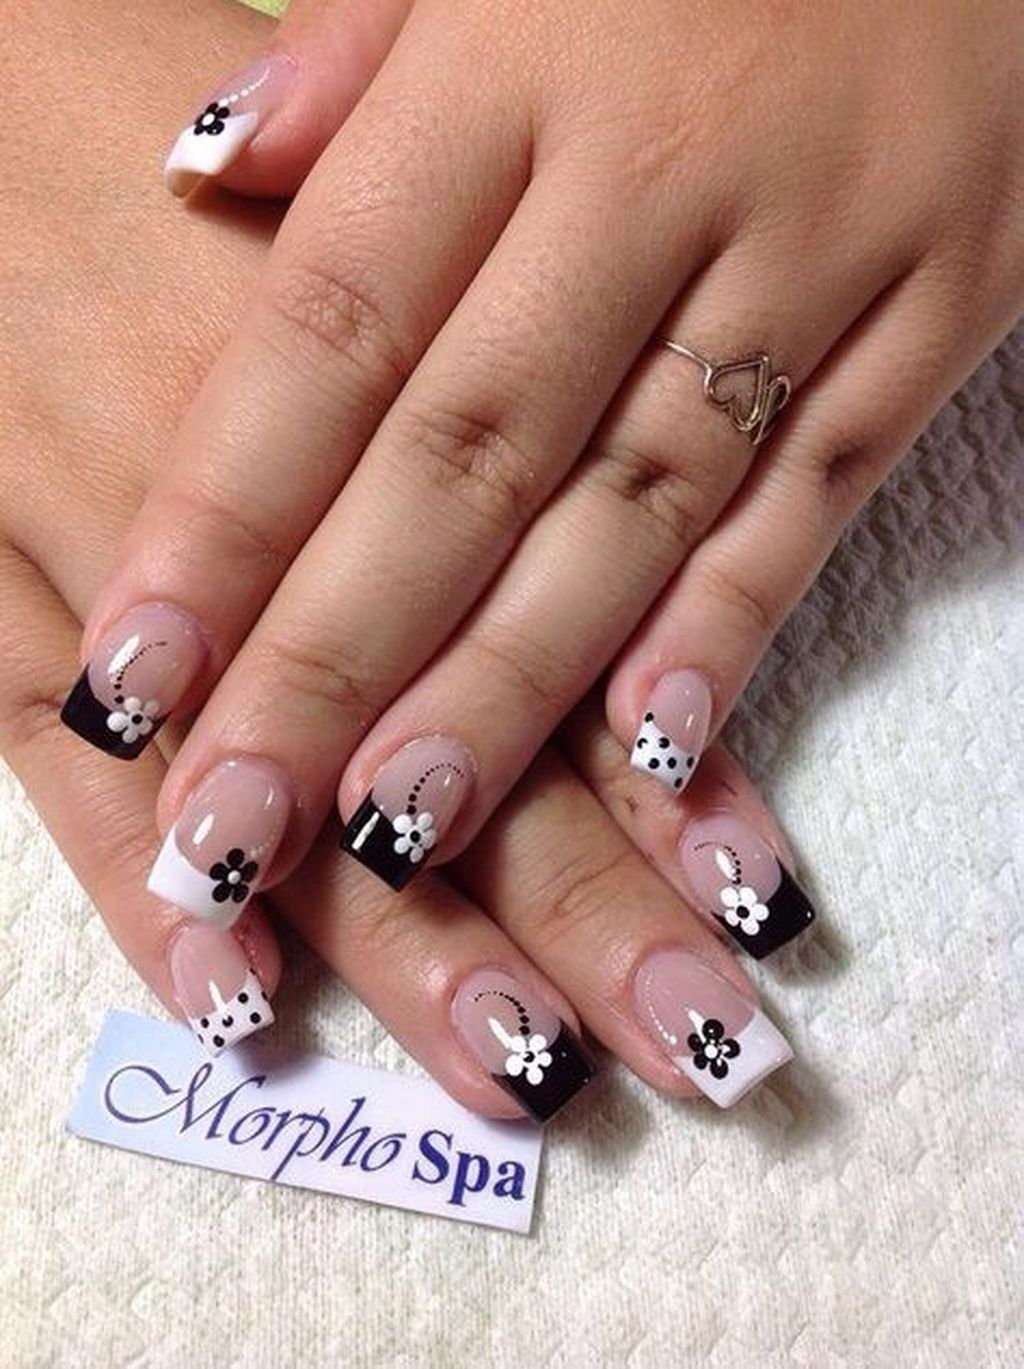 37 Amazing French Manicure Nail Art Designs Ideas | French manicure ...